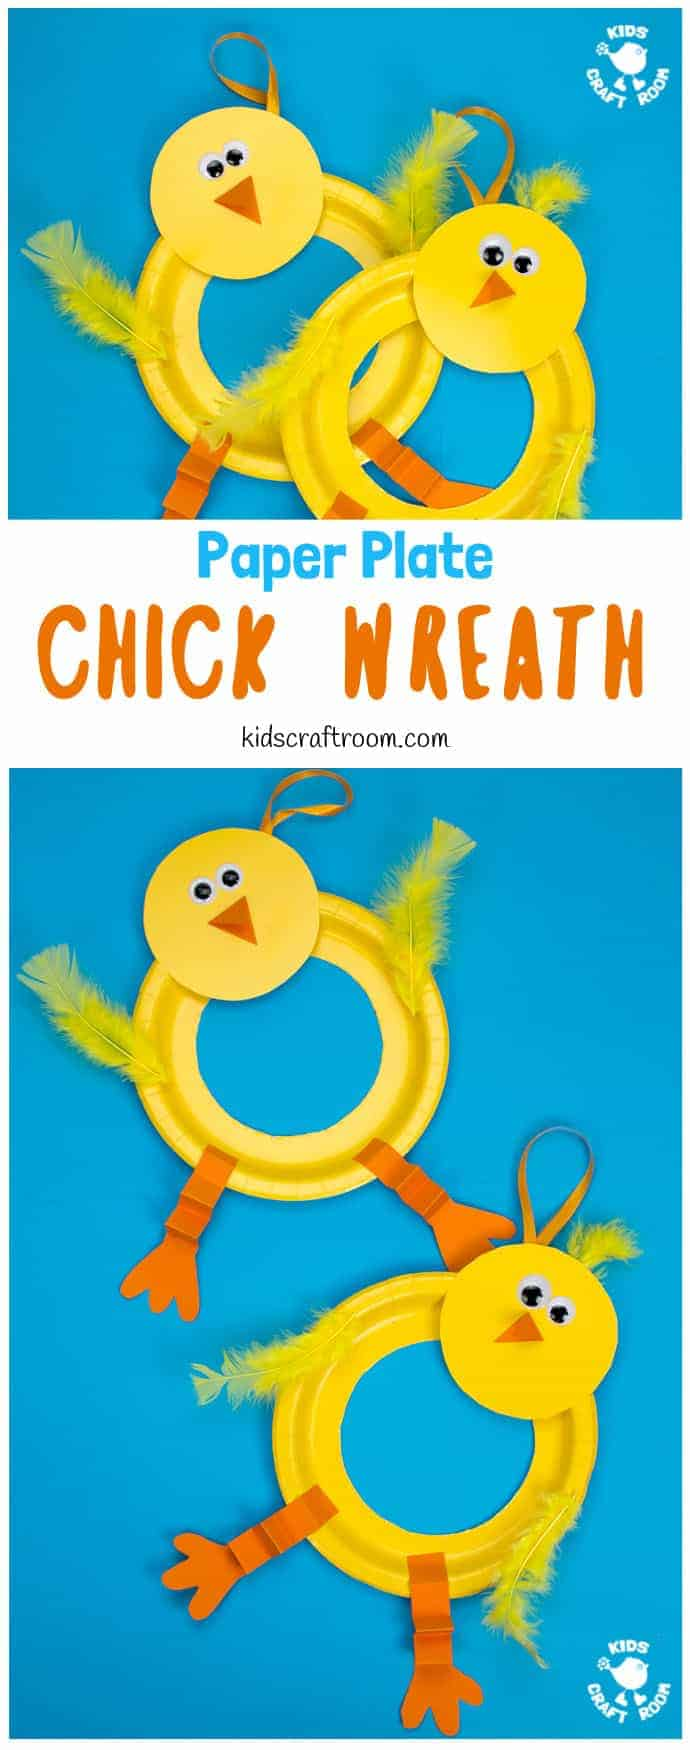 This Paper Plate Chick Wreath Craft is a perfect Spring craft or Easter craft for kids! This chick craft is very easy and looks so cute hanging on the door! Paper plate crafts are so fun! via #kidscraftroom #eastercrafts #easterchicks #chicks #springcrafts #springcraftsforkids #wreaths #wreathmaking #easterwreaths #paperplatecrafts #kidscrafts